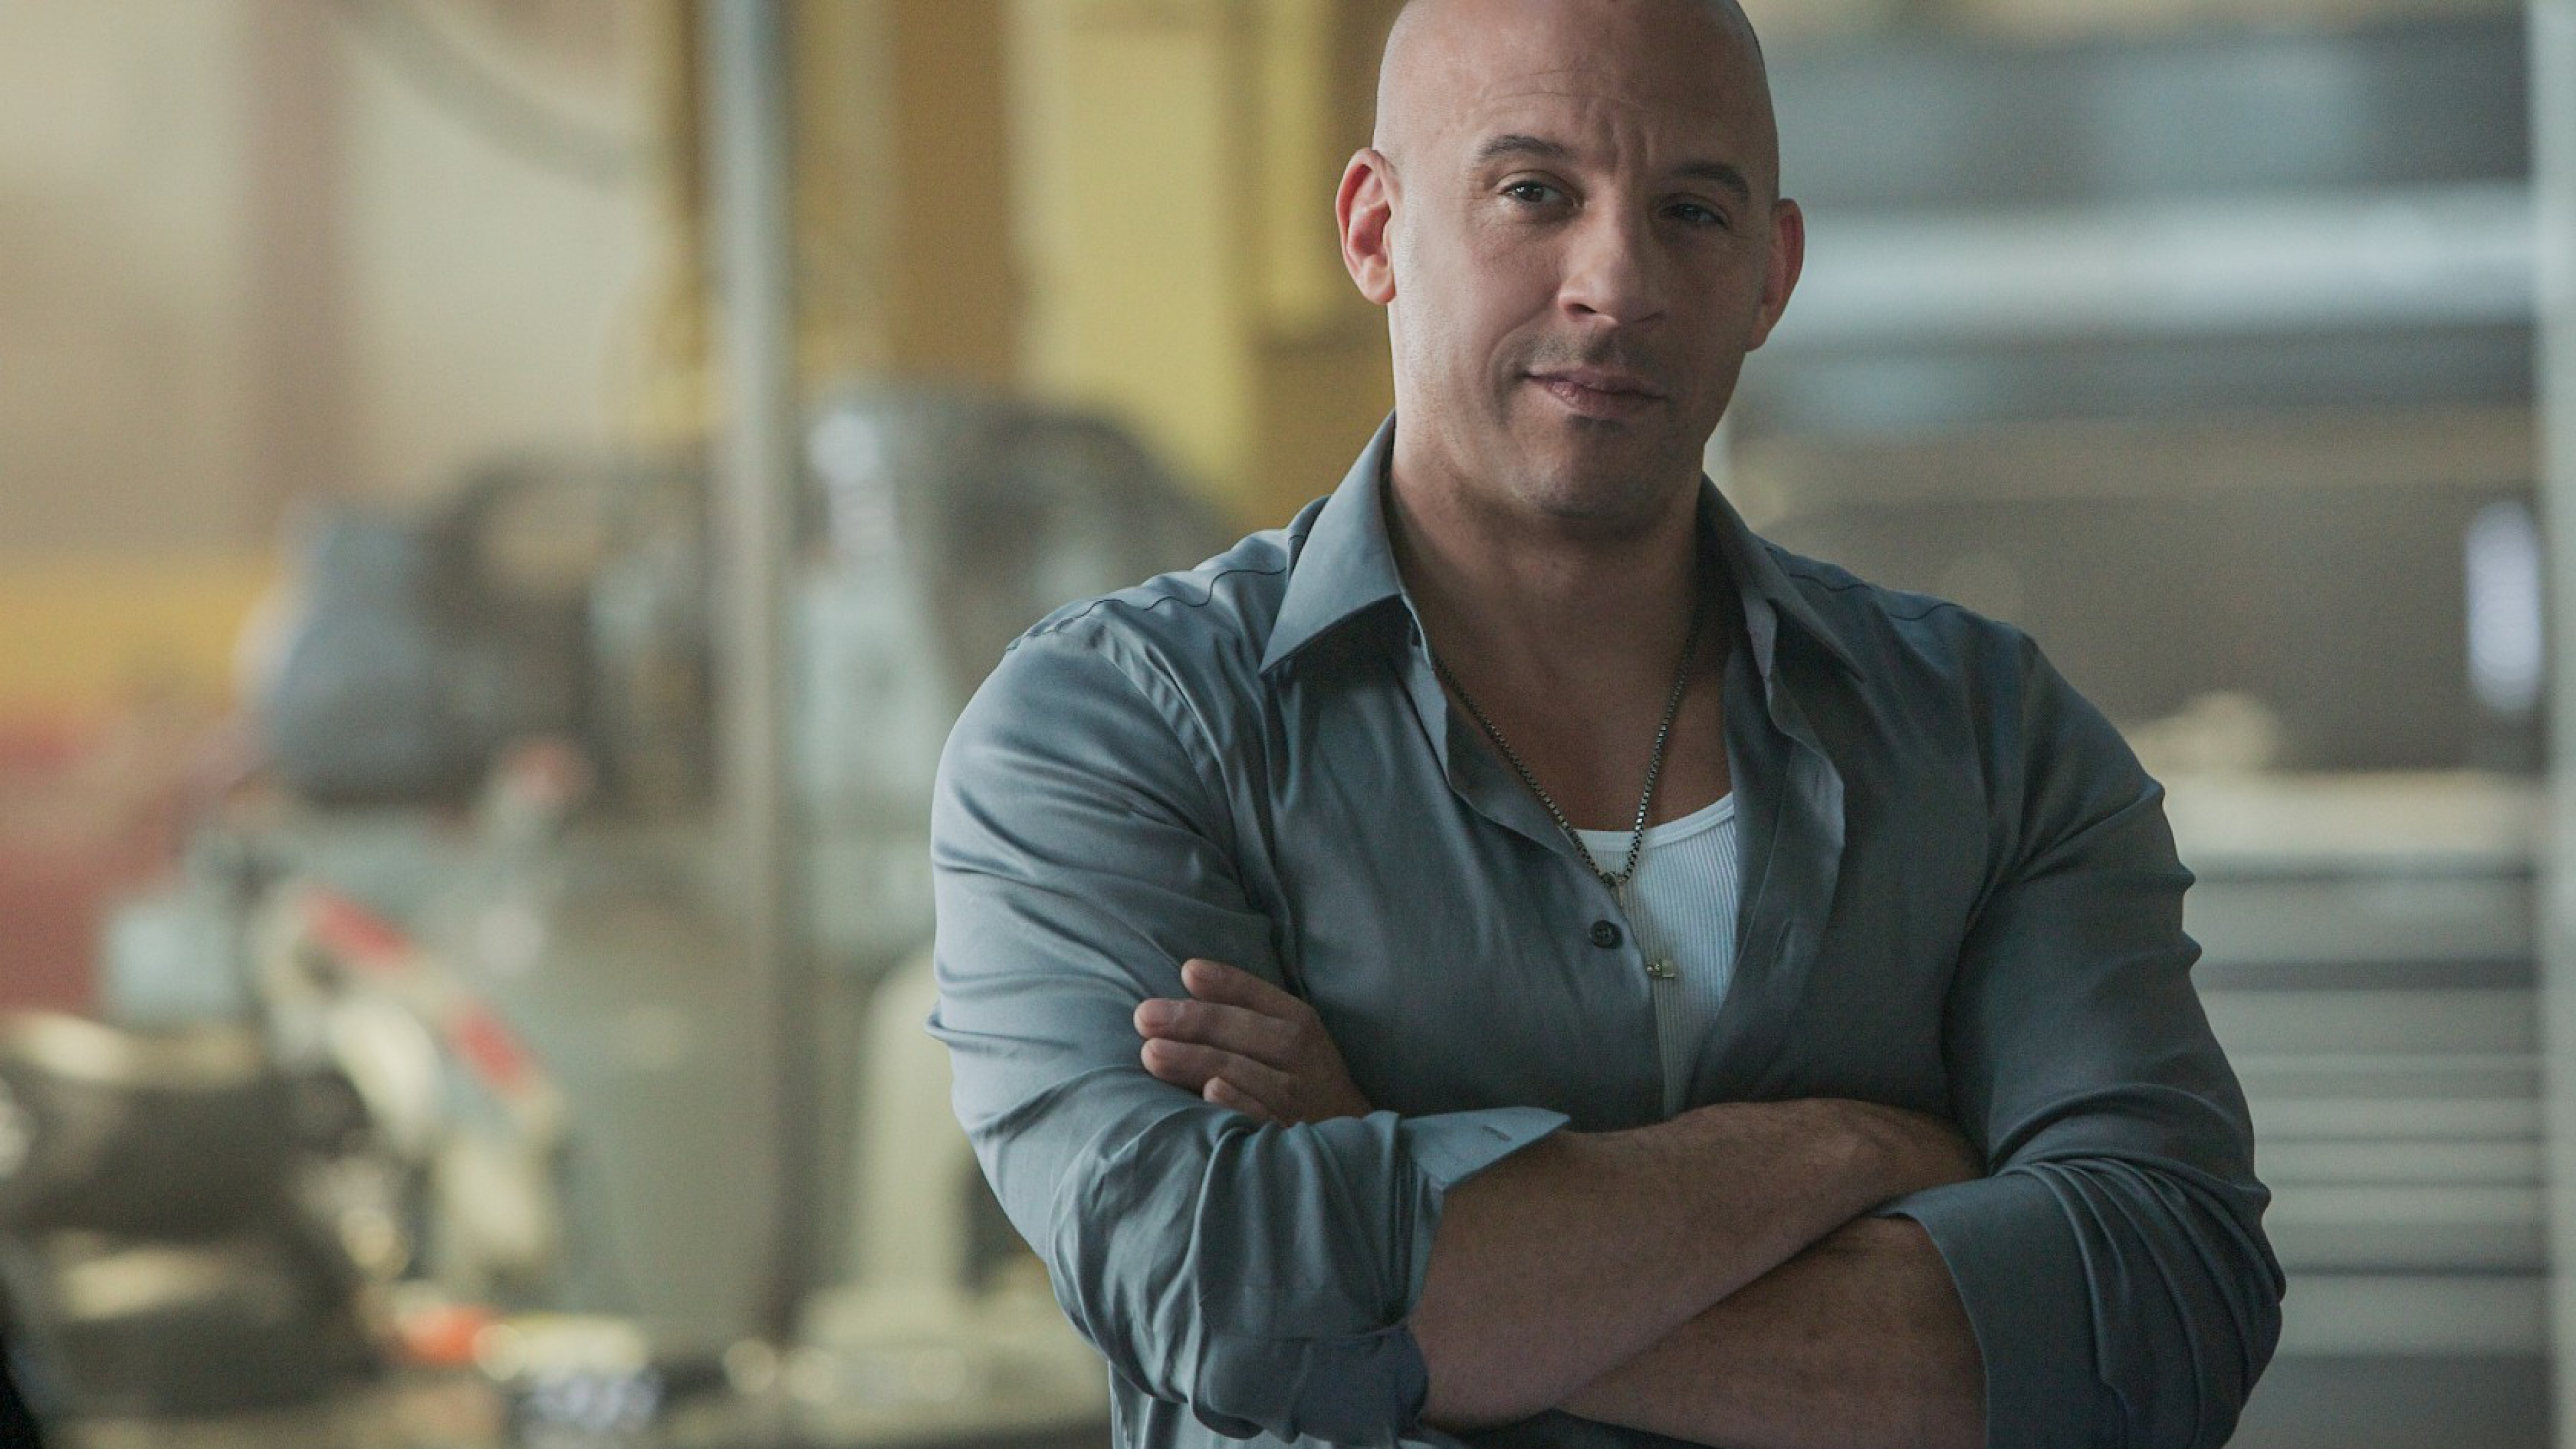 vin diesel 1536855407 - Vin Diesel - vin diesel wallpapers, celebrities wallpapers